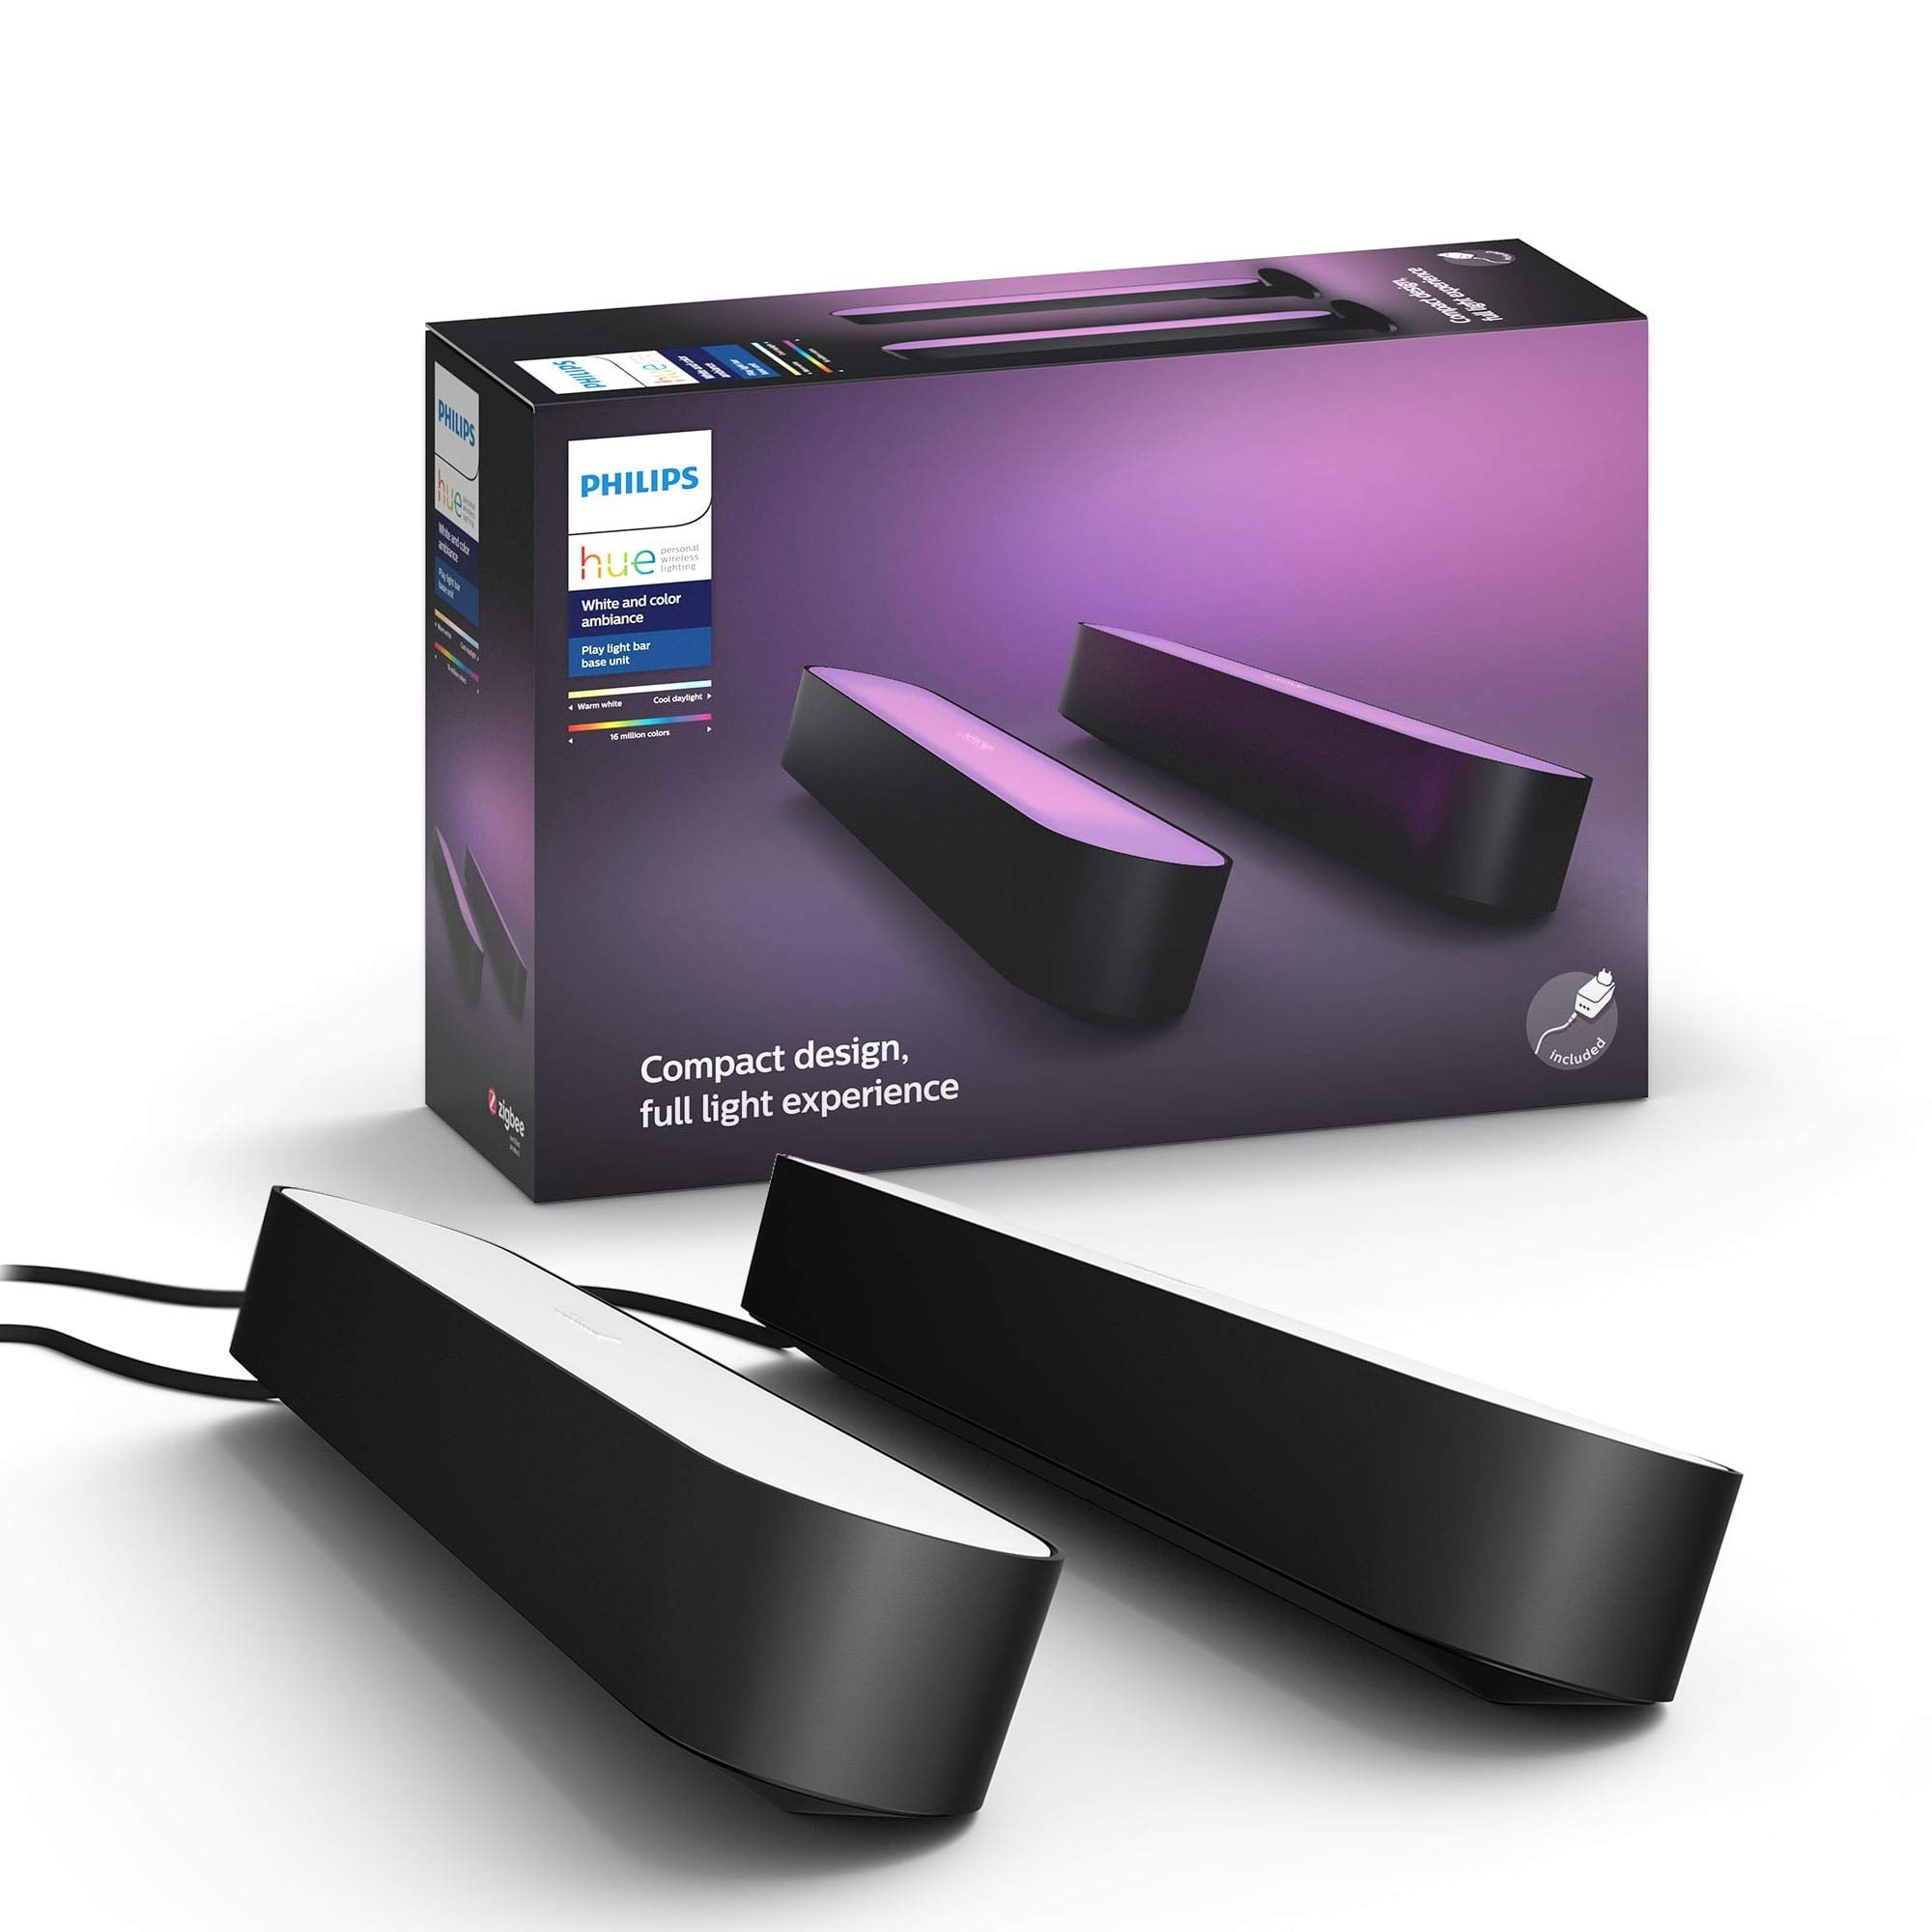 Philips - Hue Play White & Color Ambiance Smart LED Bar Light - Black (Double Pack) (Renewed) by Philips Hue (Image #1)